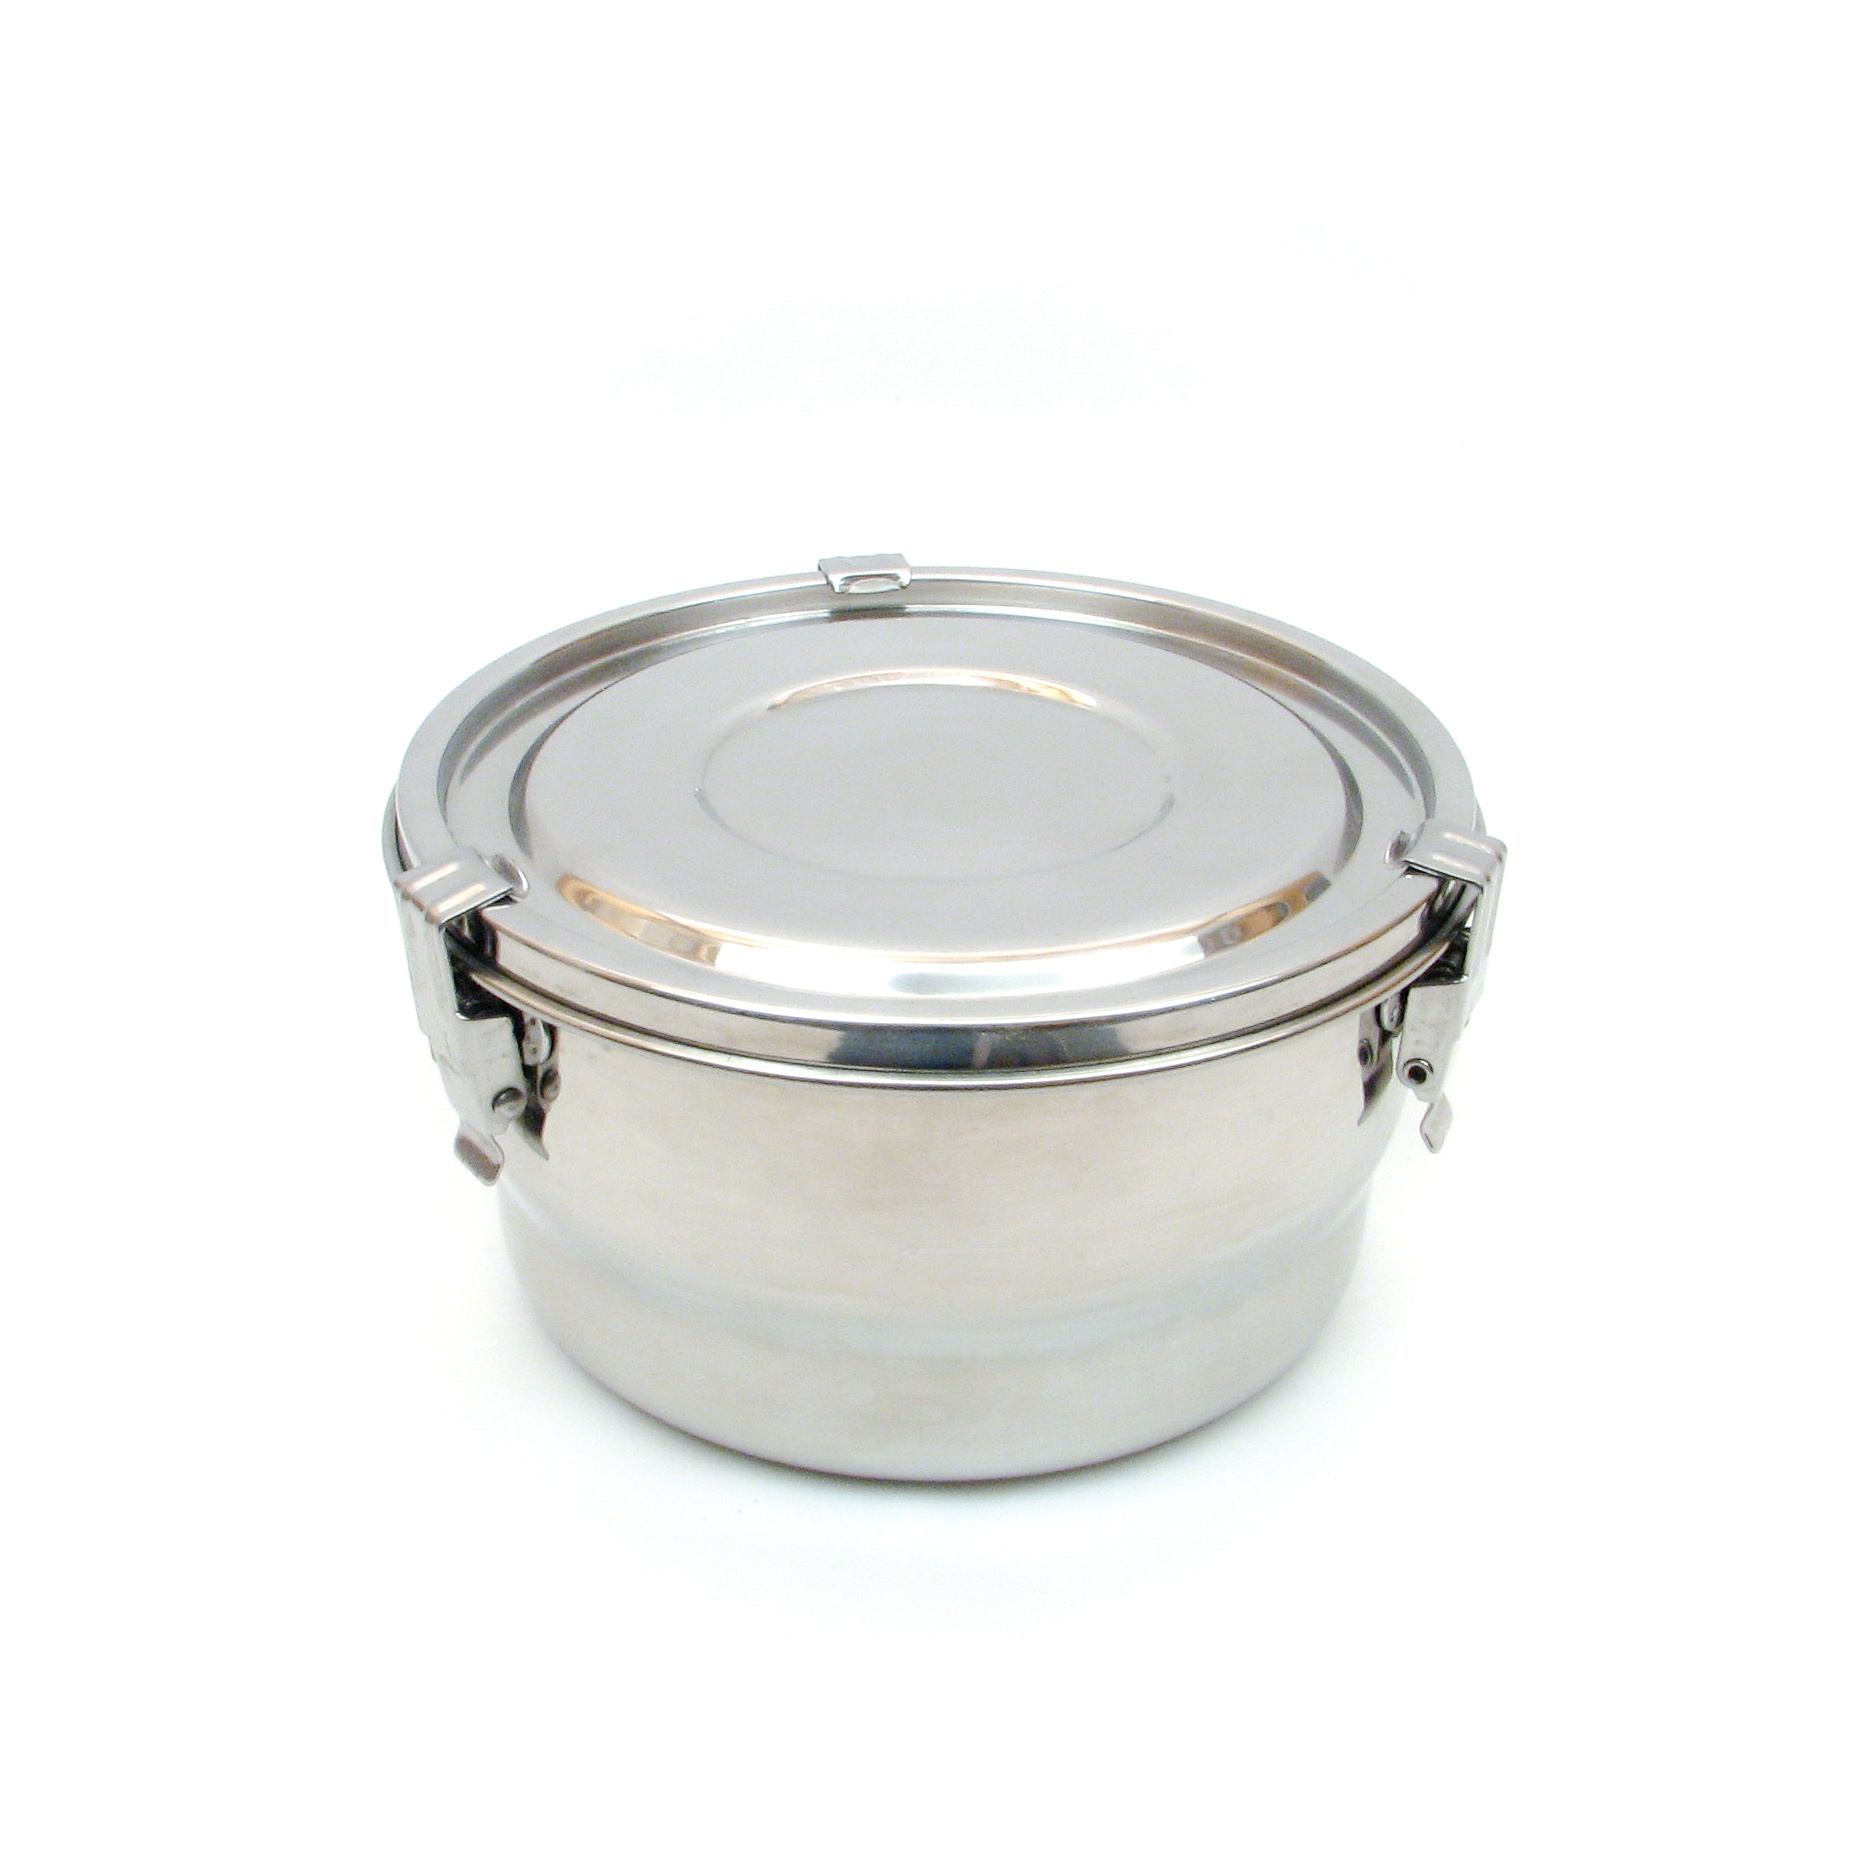 Stainless Steel Airtight Watertight Food Storage Container - 1125 mL